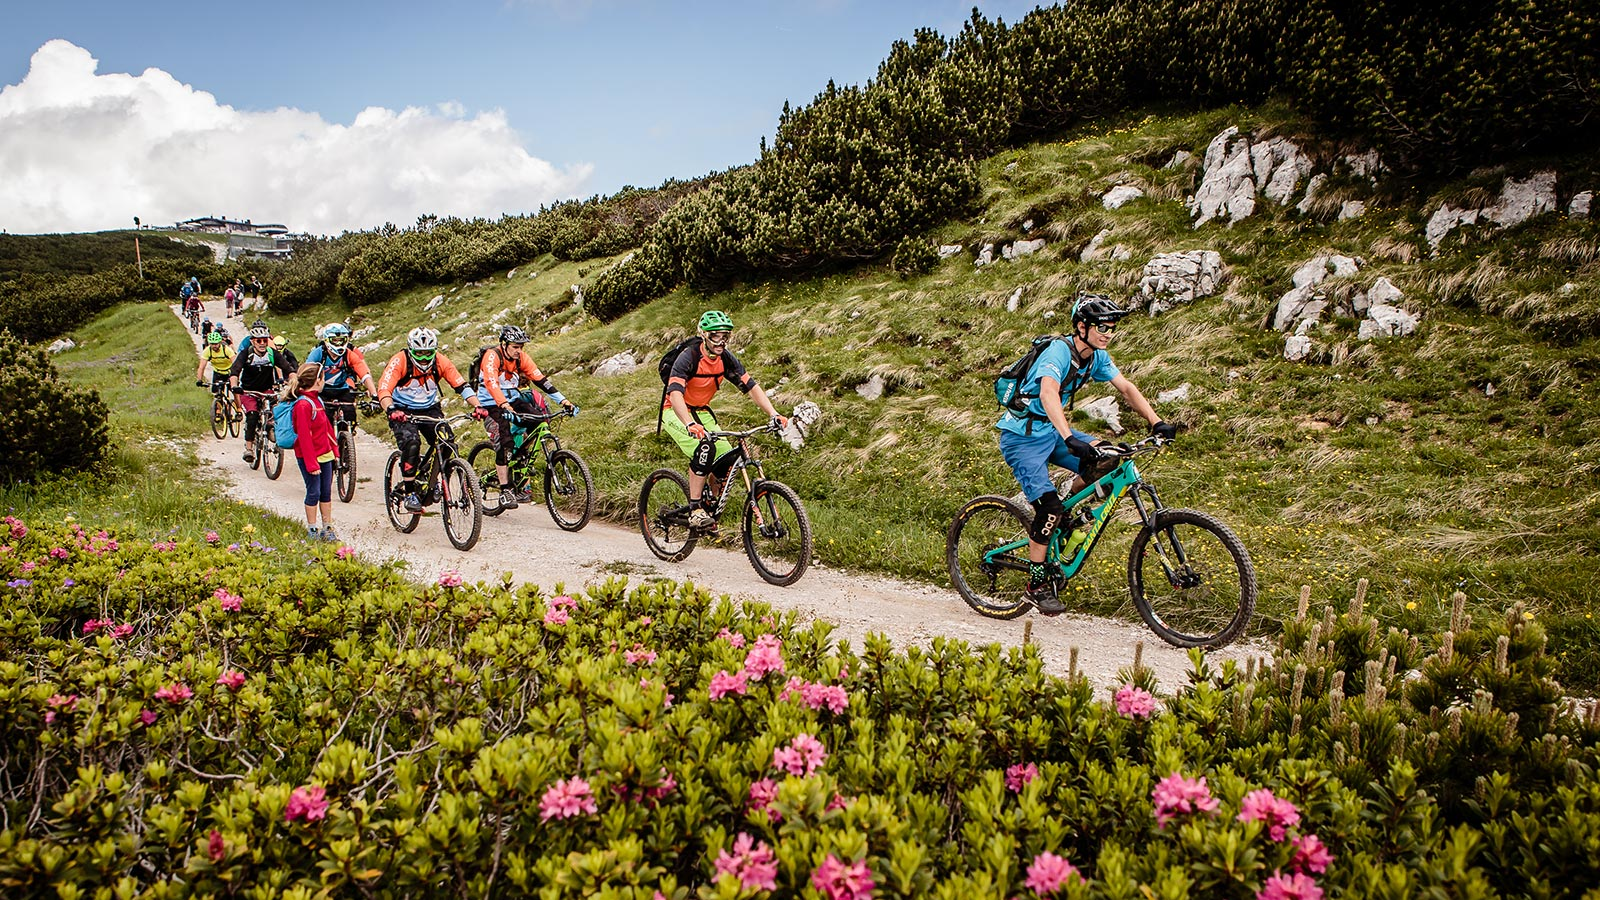 A group of cyclists takes a descent in Andalo